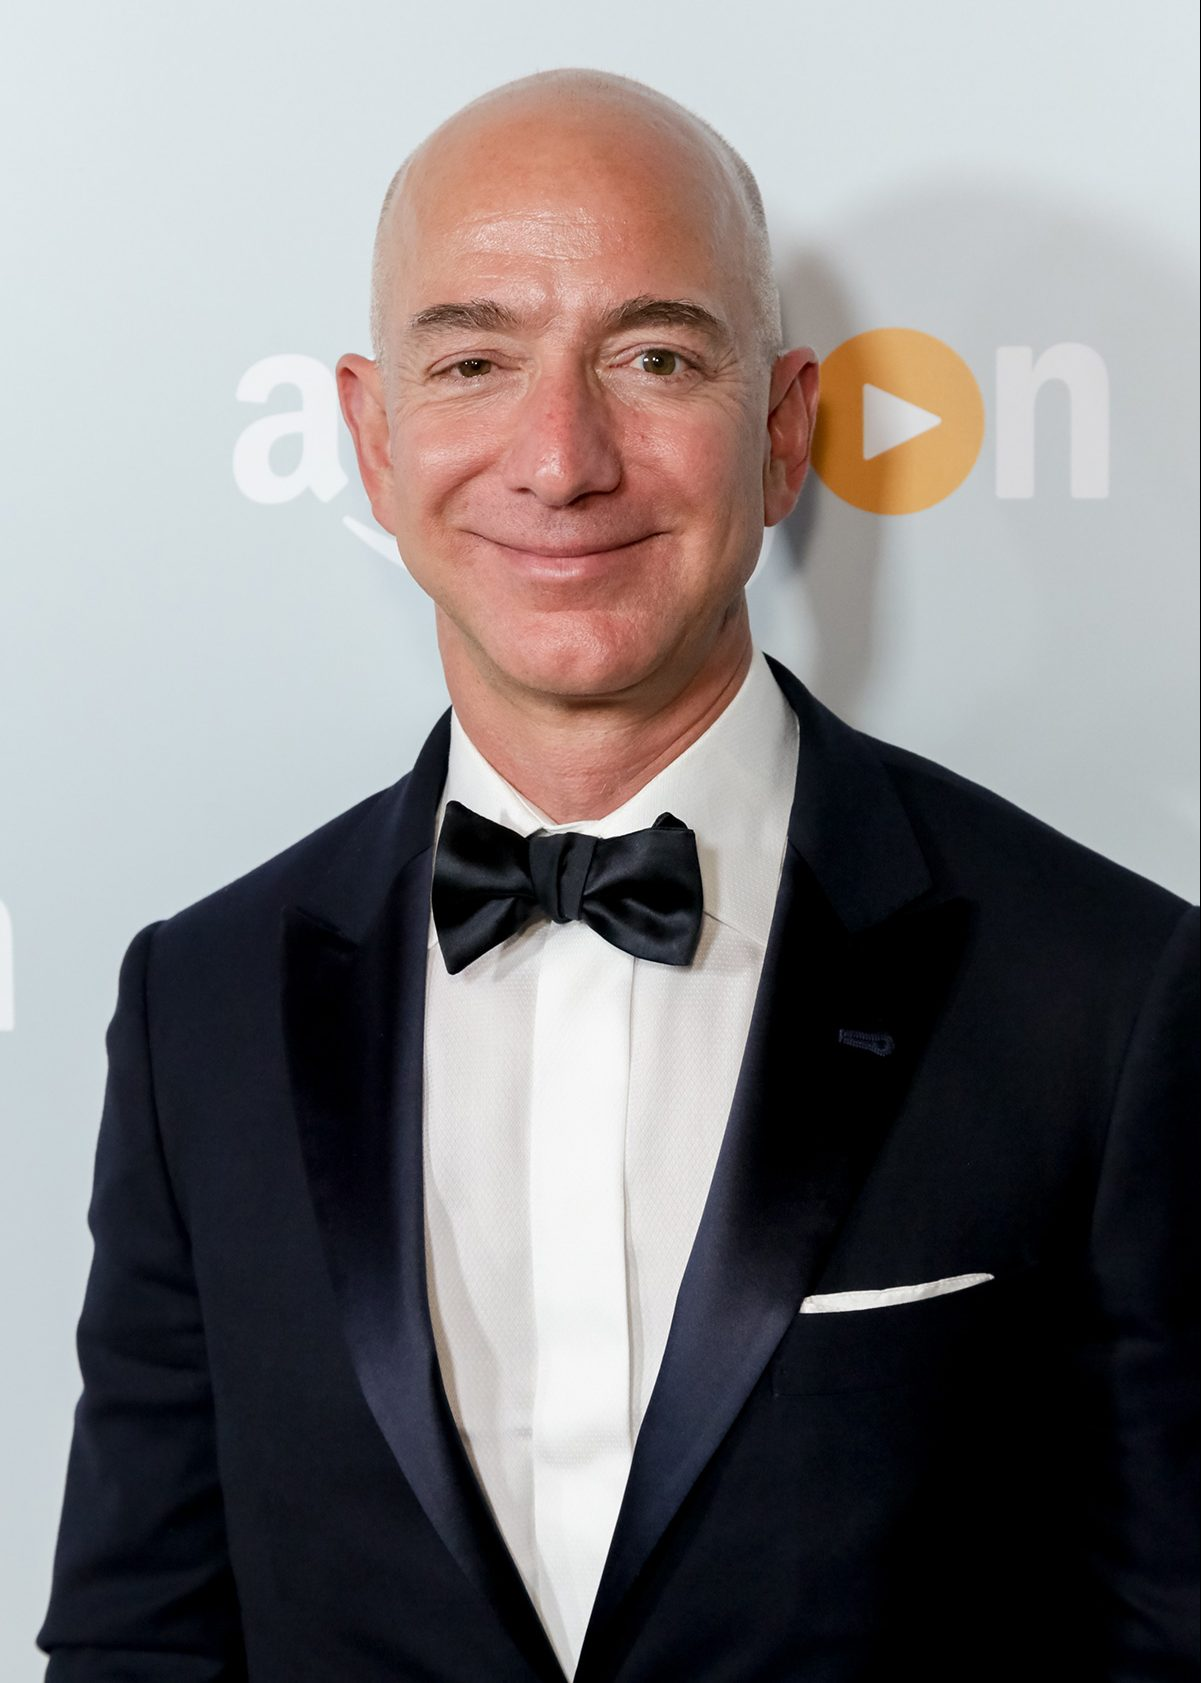 jeff bezos - photo #4